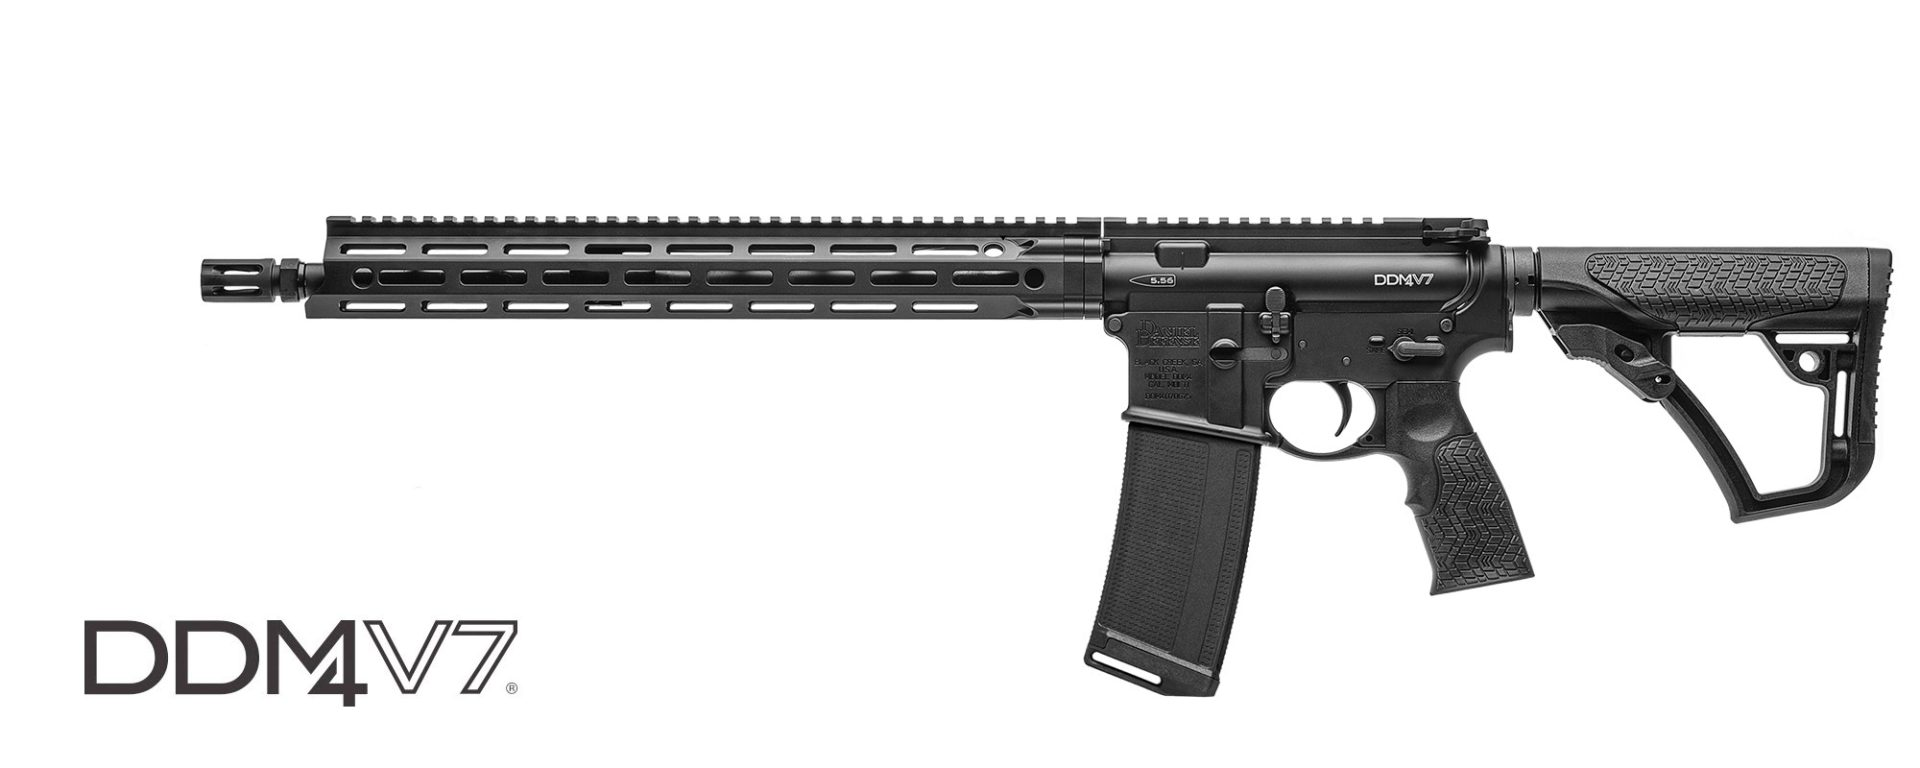 Daniel Defense DDM4 V7 Rifle 2